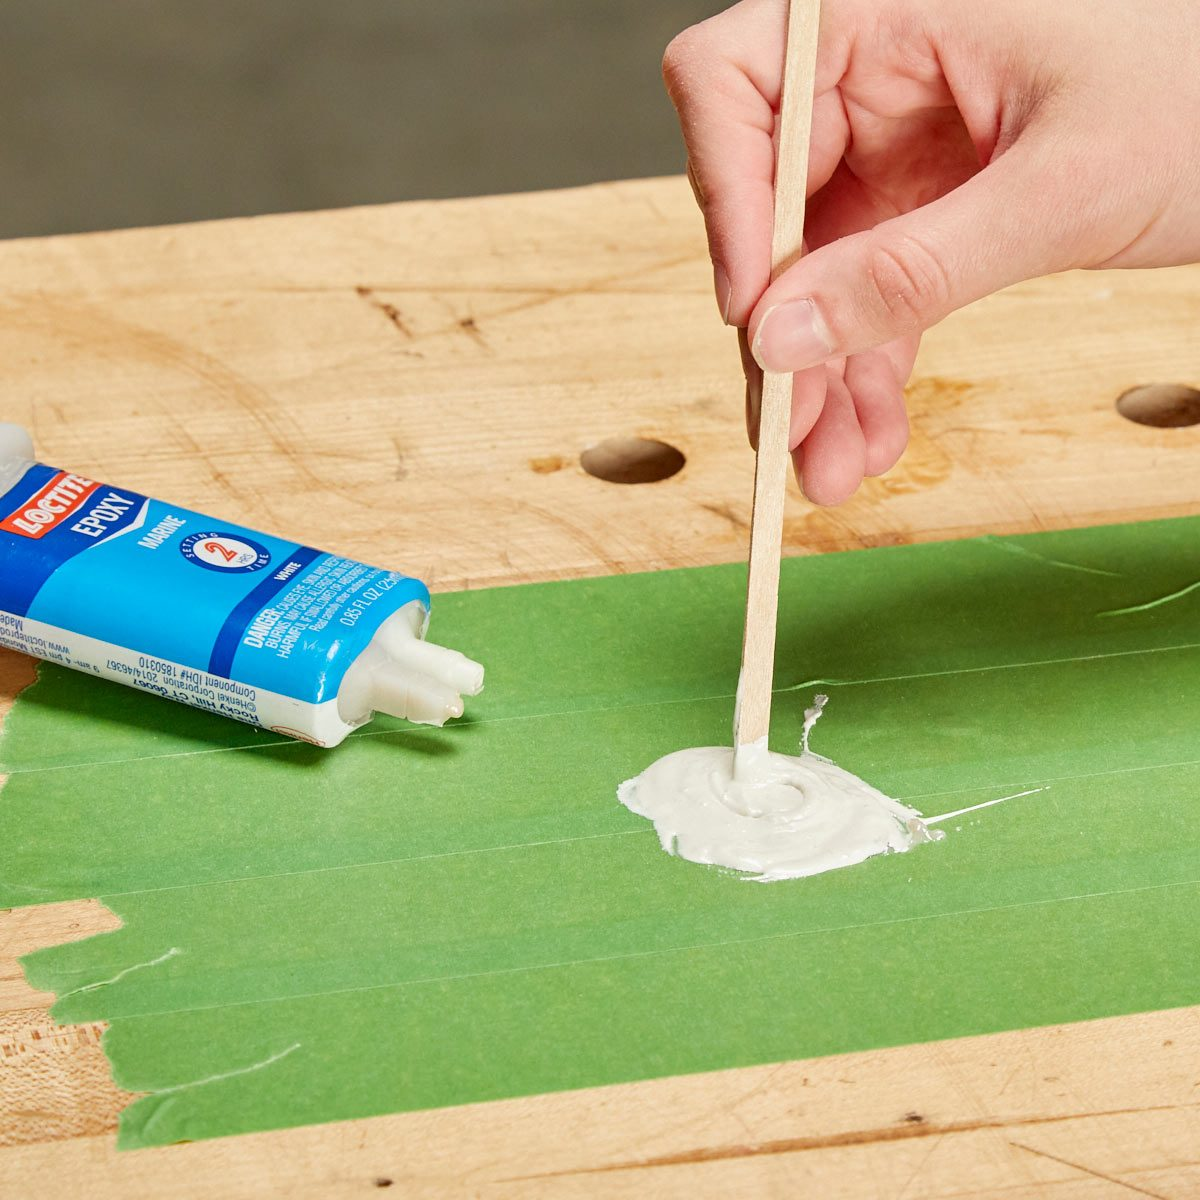 HH painters tape temporary mixing surface